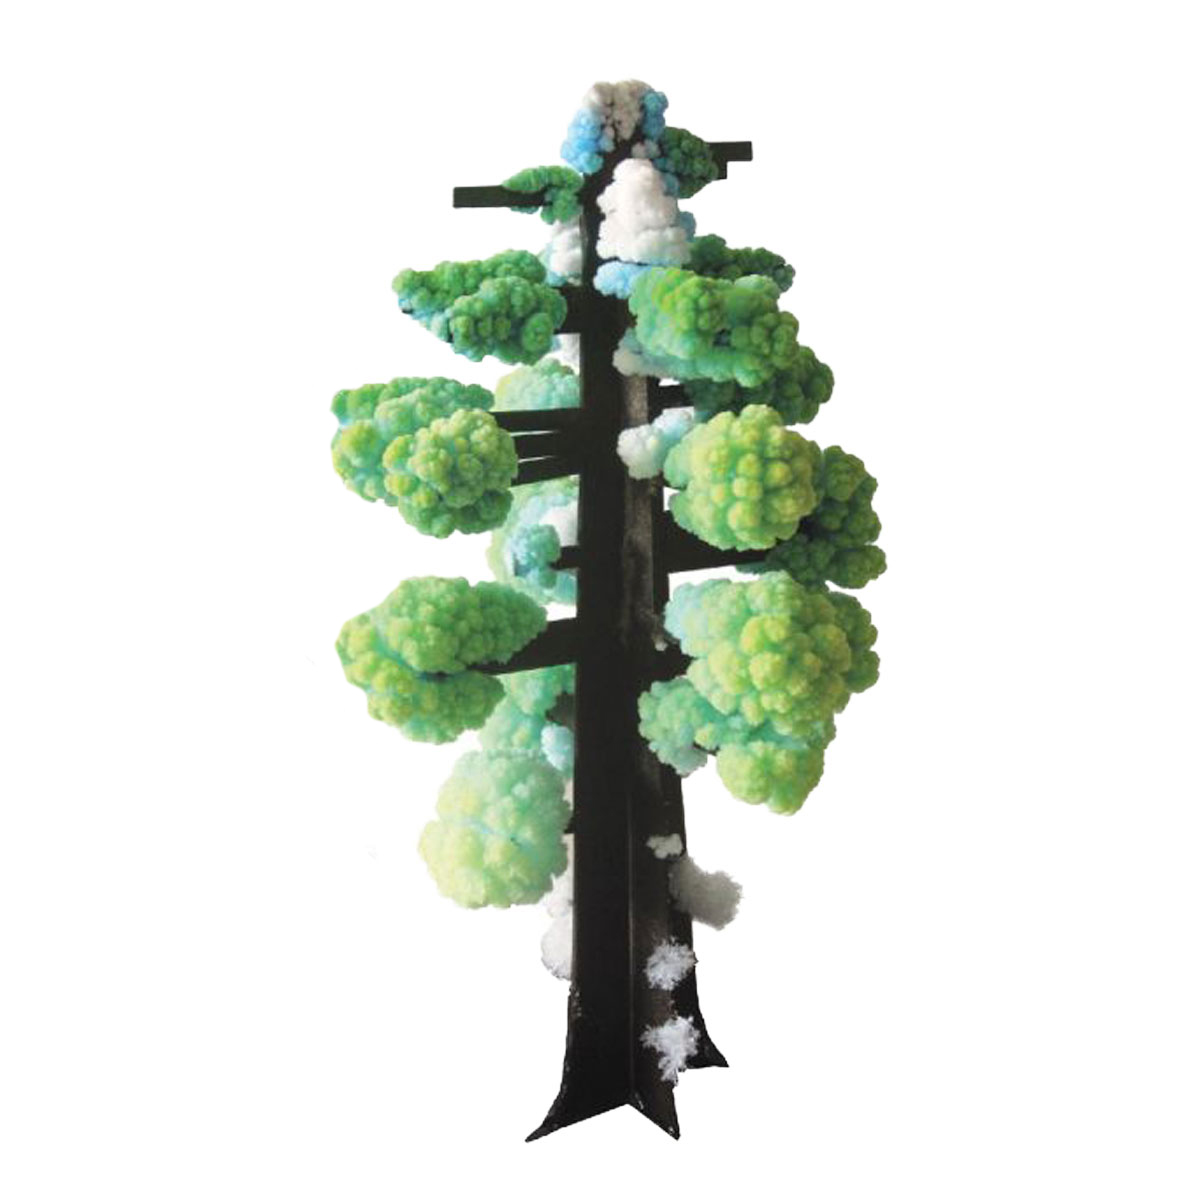 Copernicus Crystal Growing Kit in Giant Sequoia Tree